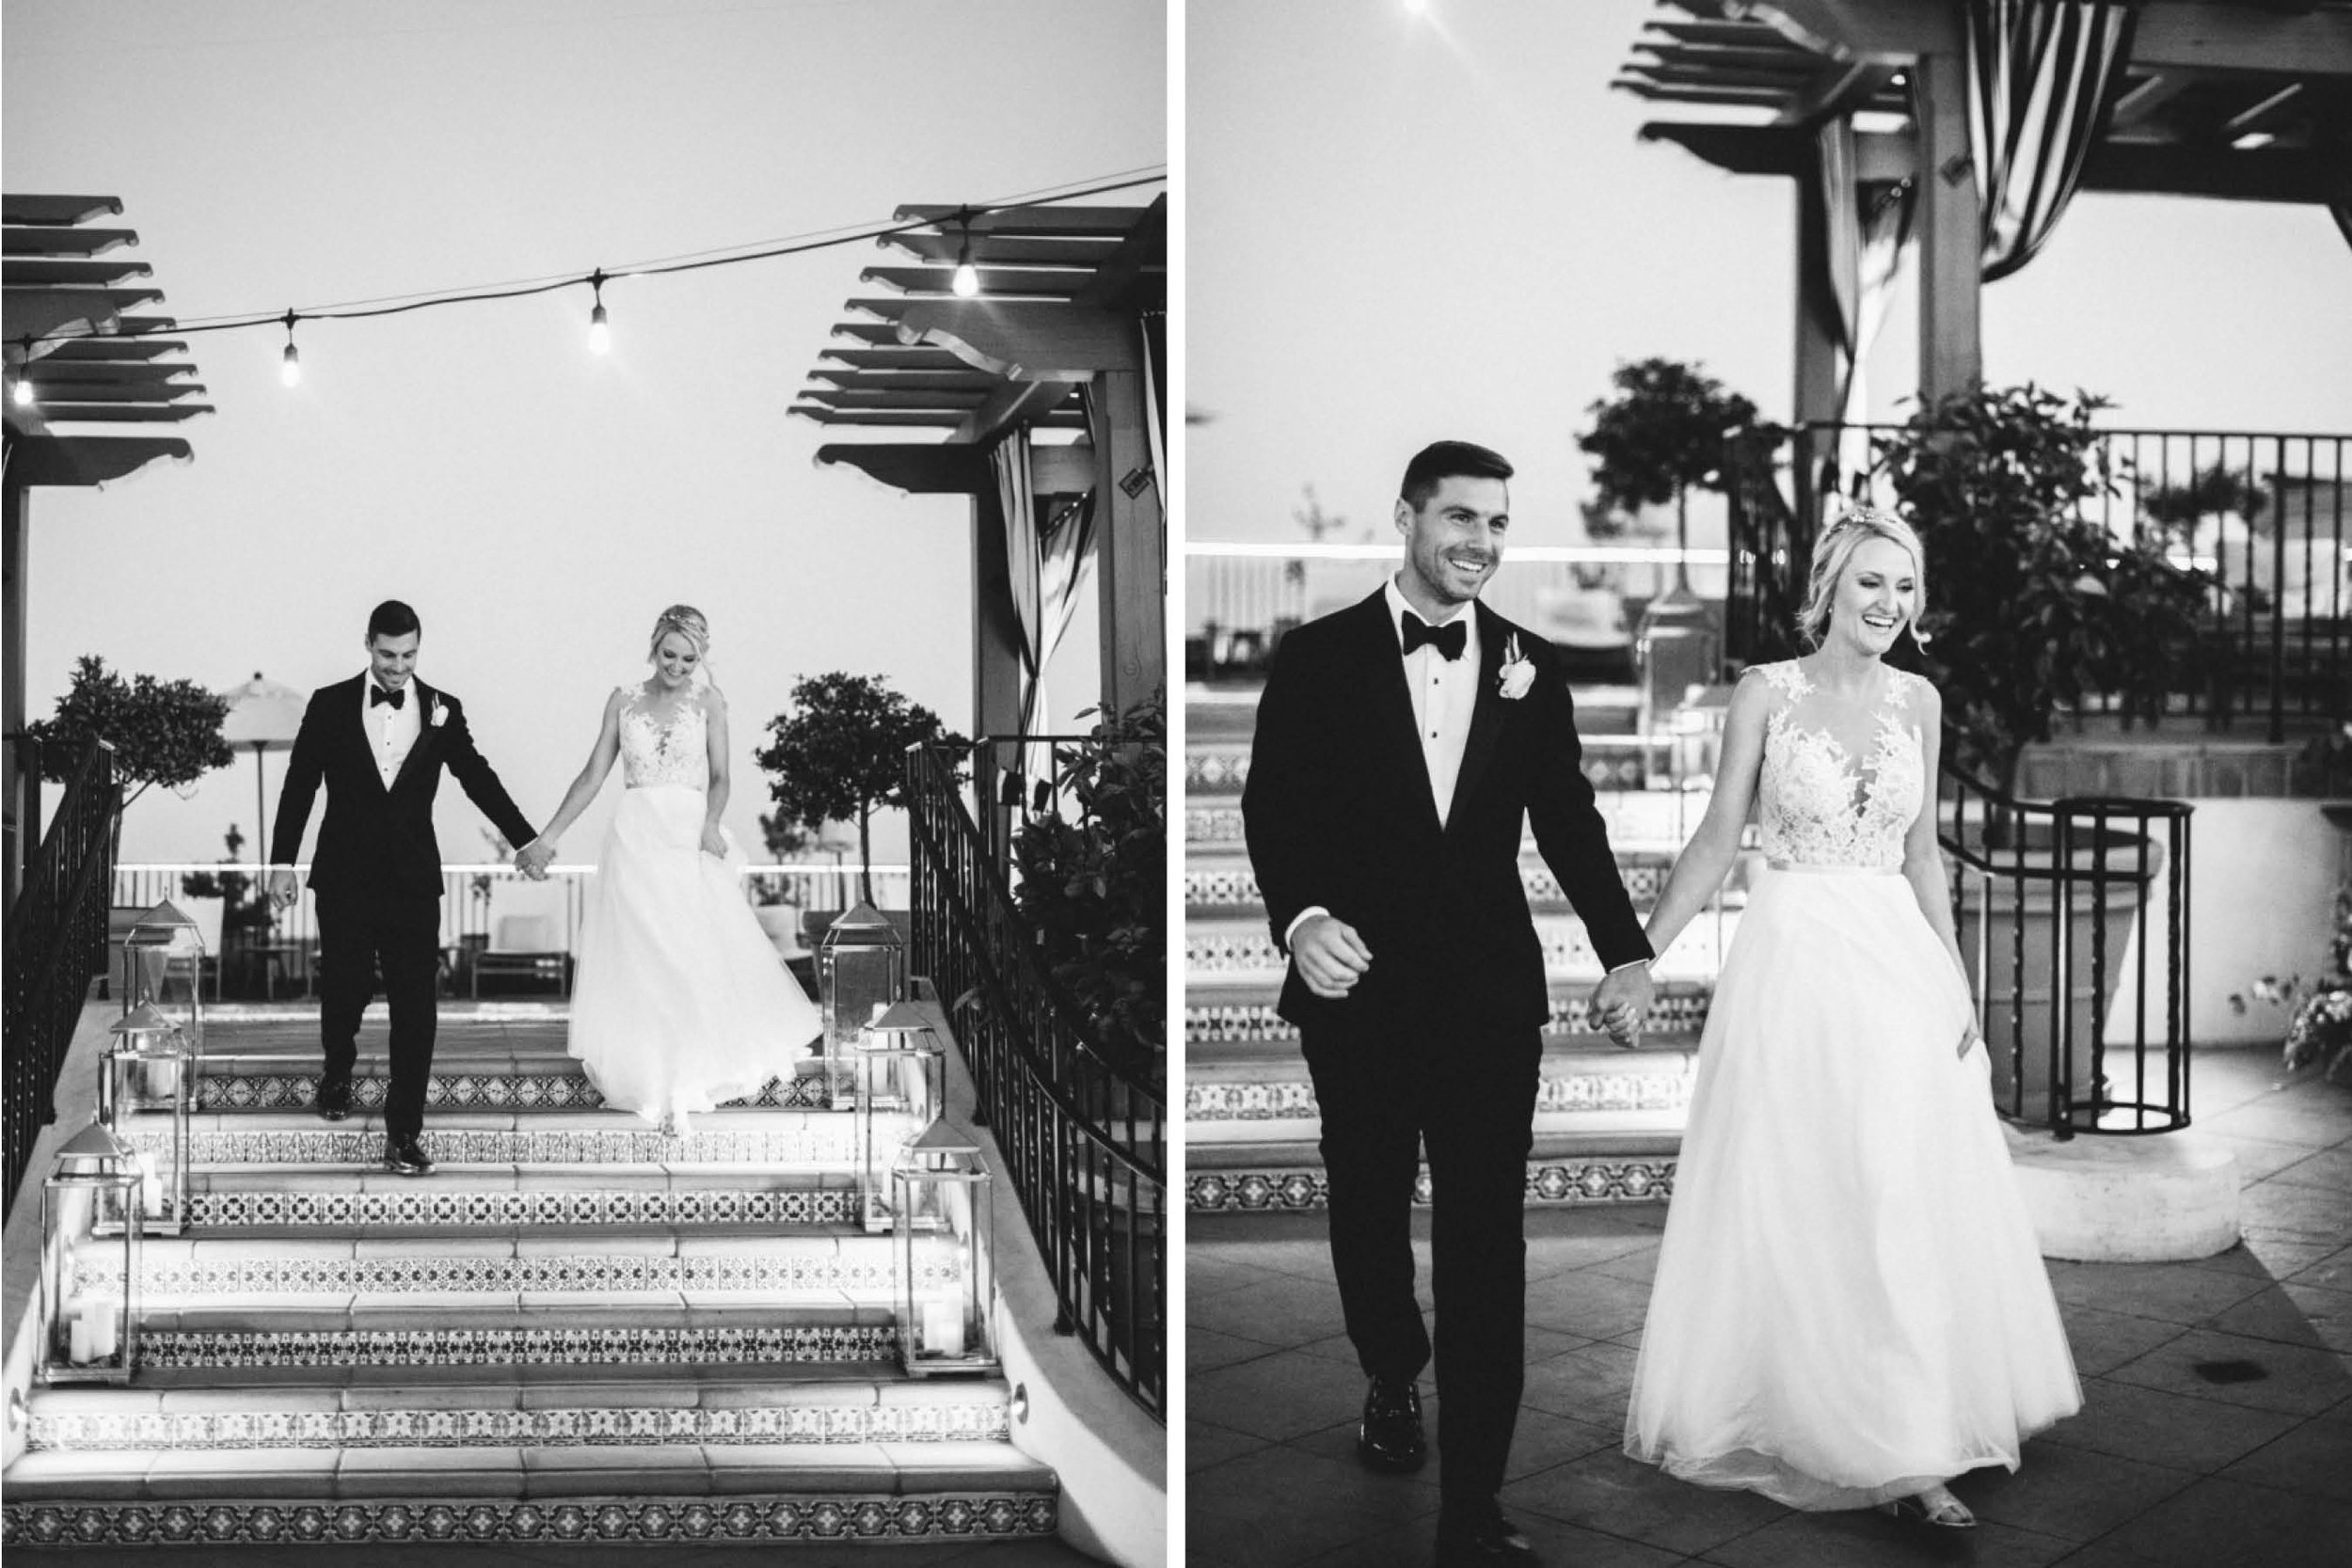 alegria-by-design-wedding-planner-planning-event-design-coordinator-day-of-canary-hotel-rooftop-beach-view-downtown-santa-barbara (32).jpg